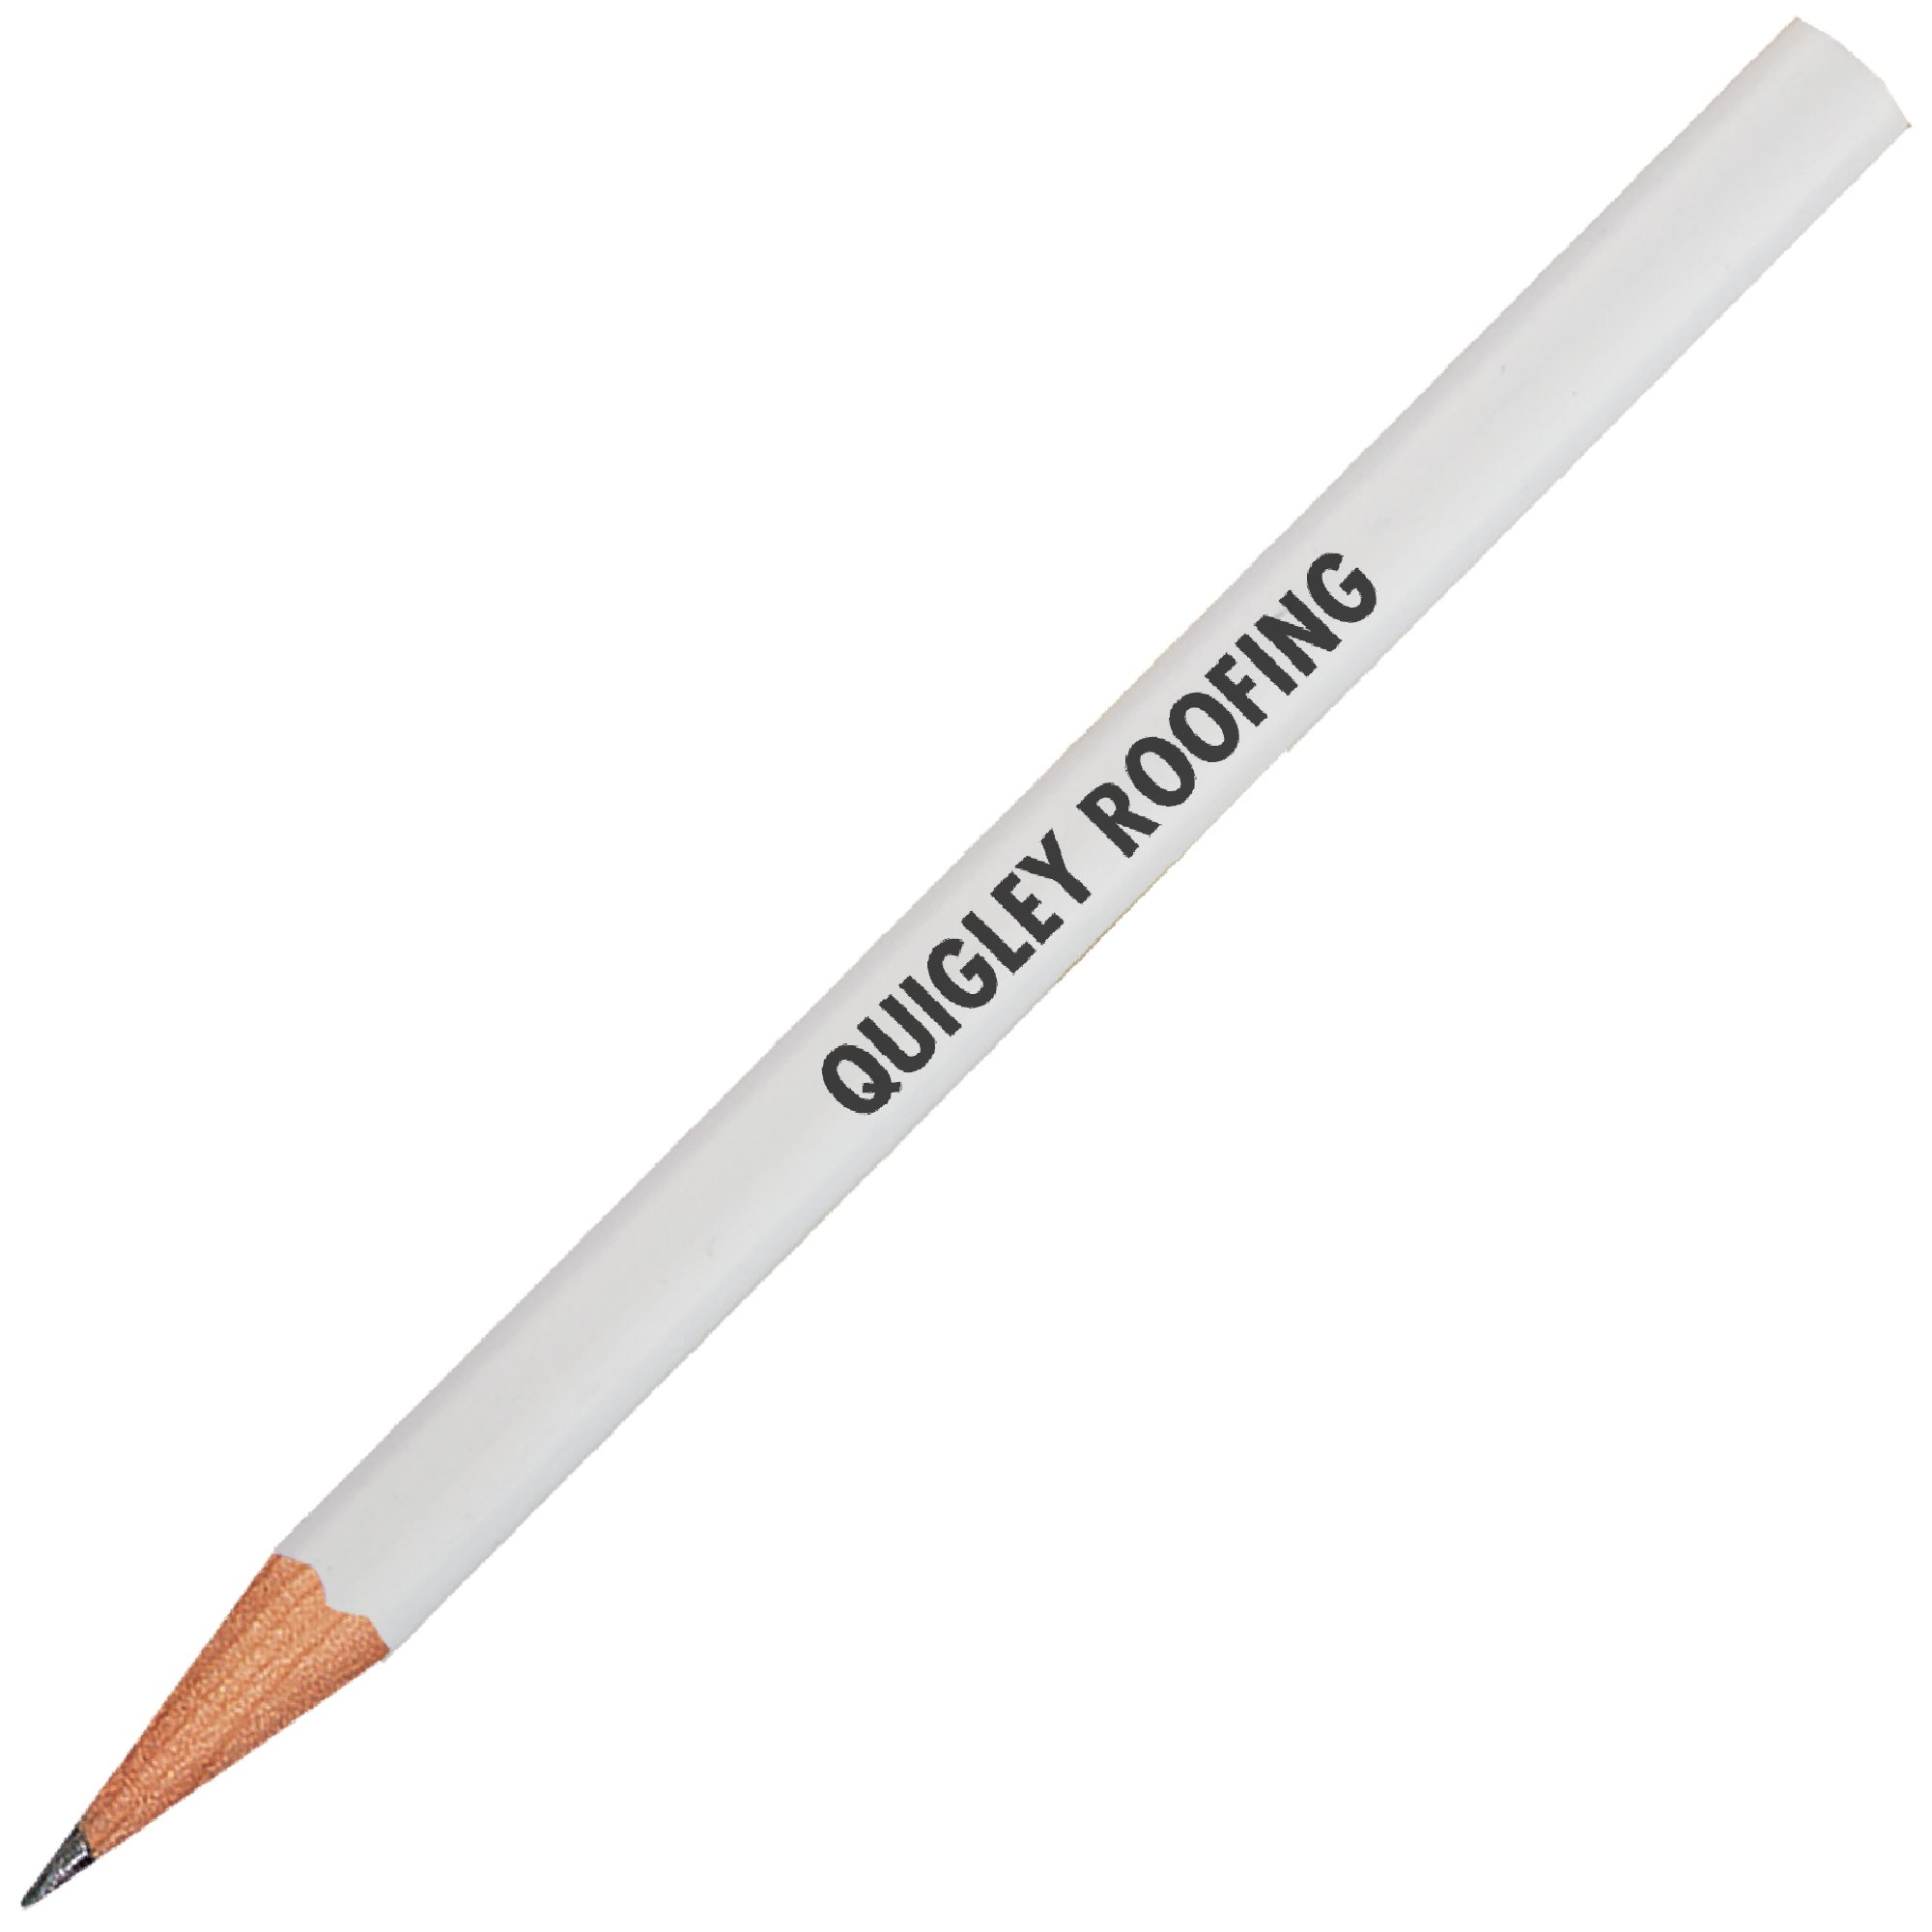 promotional jumbo pencils national pen